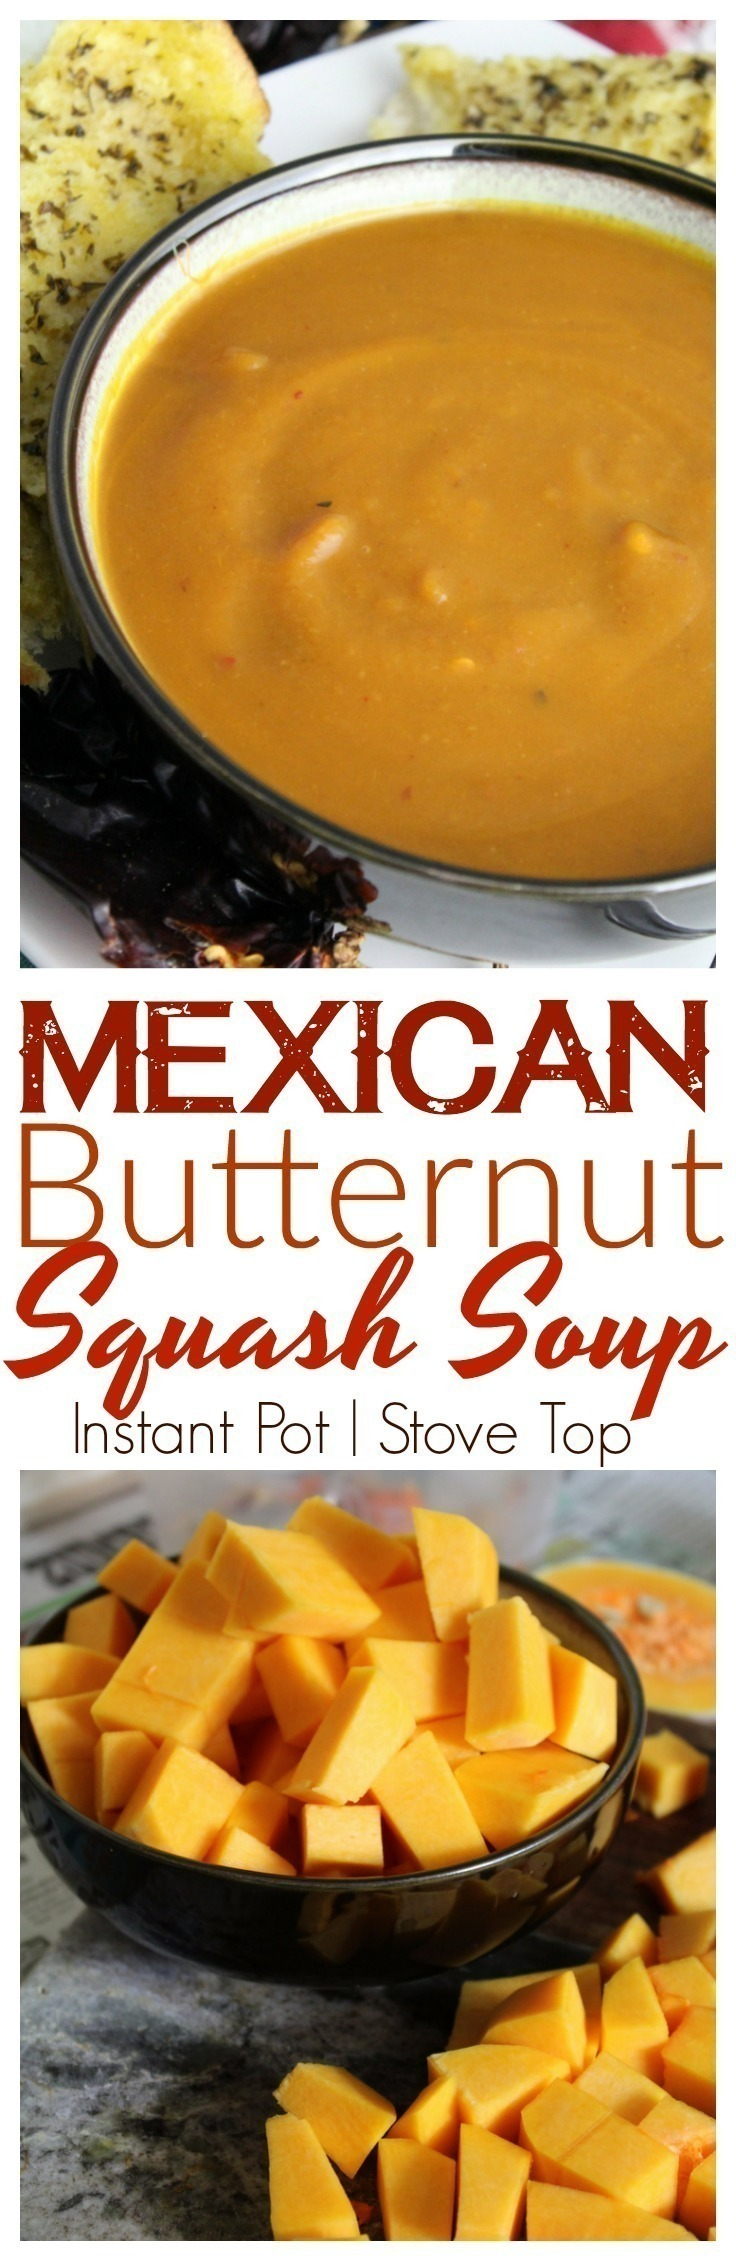 New Mexico or Ancho Chiles add tremendous flavor to this rich, and warm bowl of Mexican Butternut Squash Soup, made easily in the Instant Pot or on the stove top.